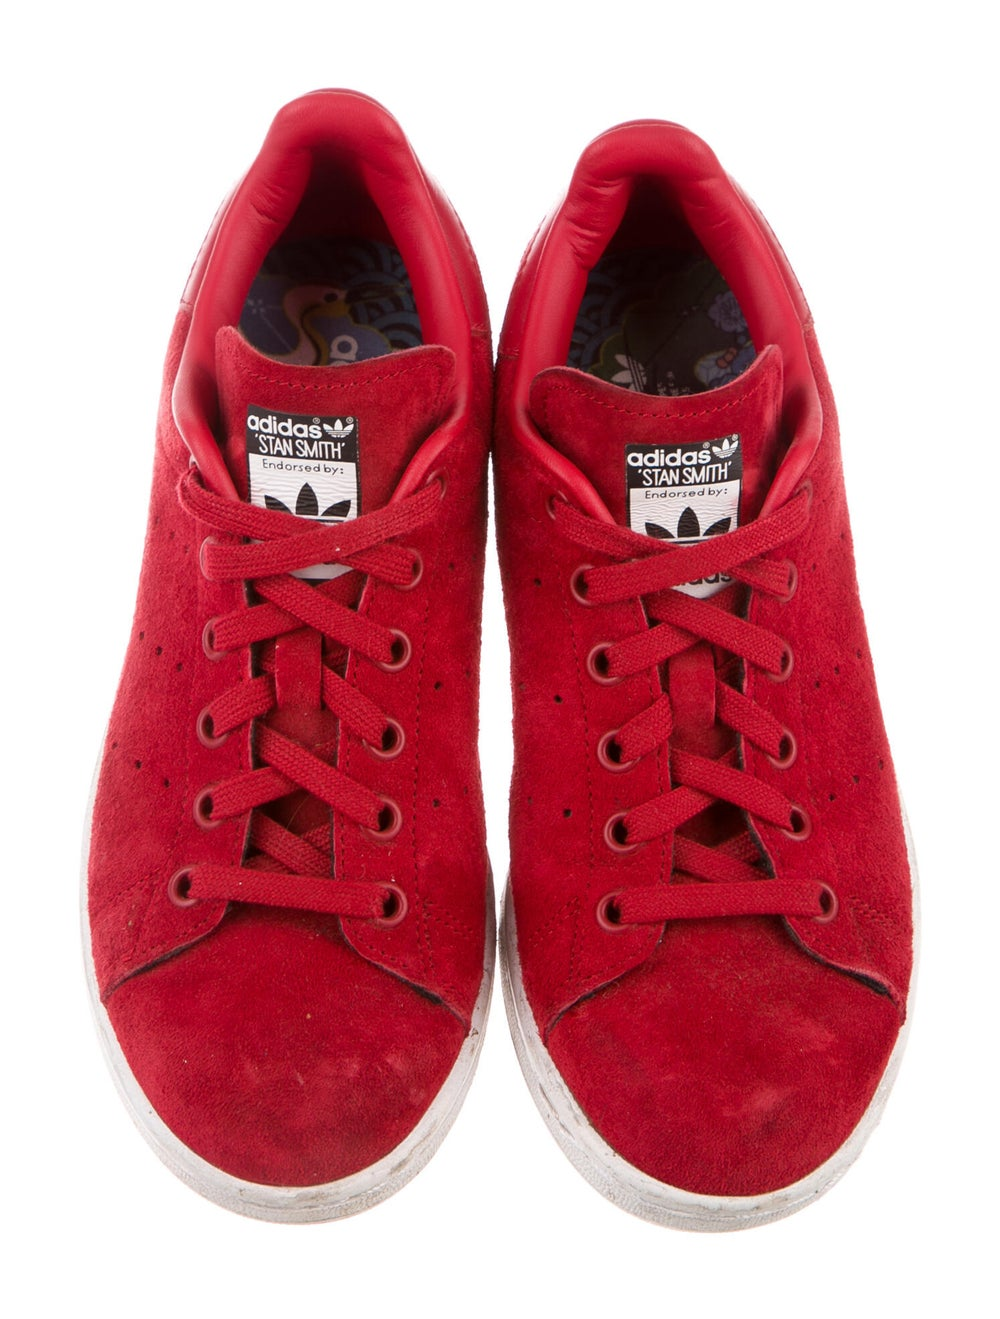 Adidas Suede Sneakers Red - image 3